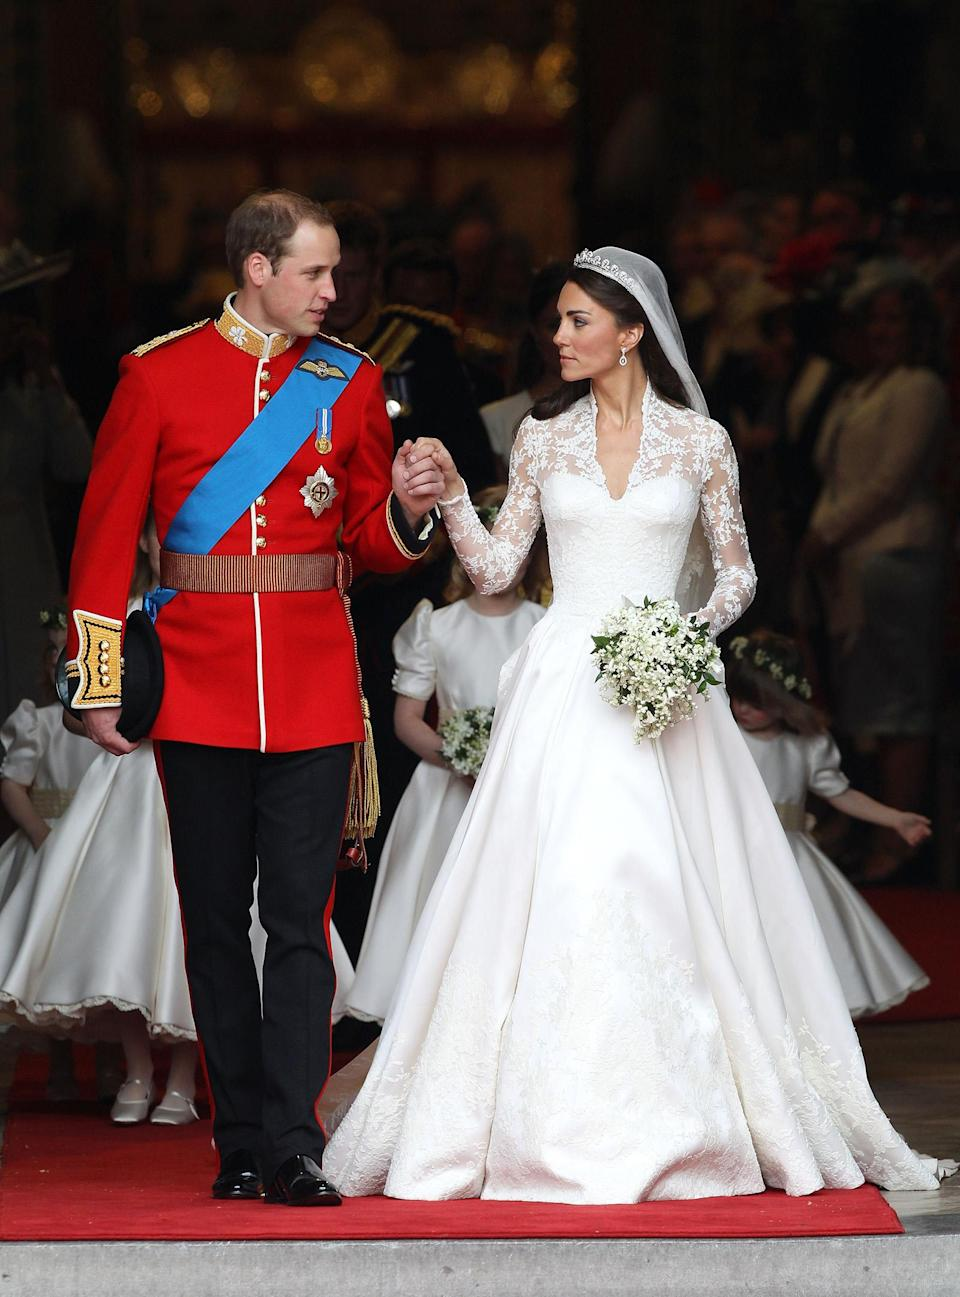 <p><b>Thousands of people flocked to London to witness the royal wedding of Prince William, Duke of Cambridge, and Catherine, Duchess of Cambridge. (Photo: Getty Images) </b></p>